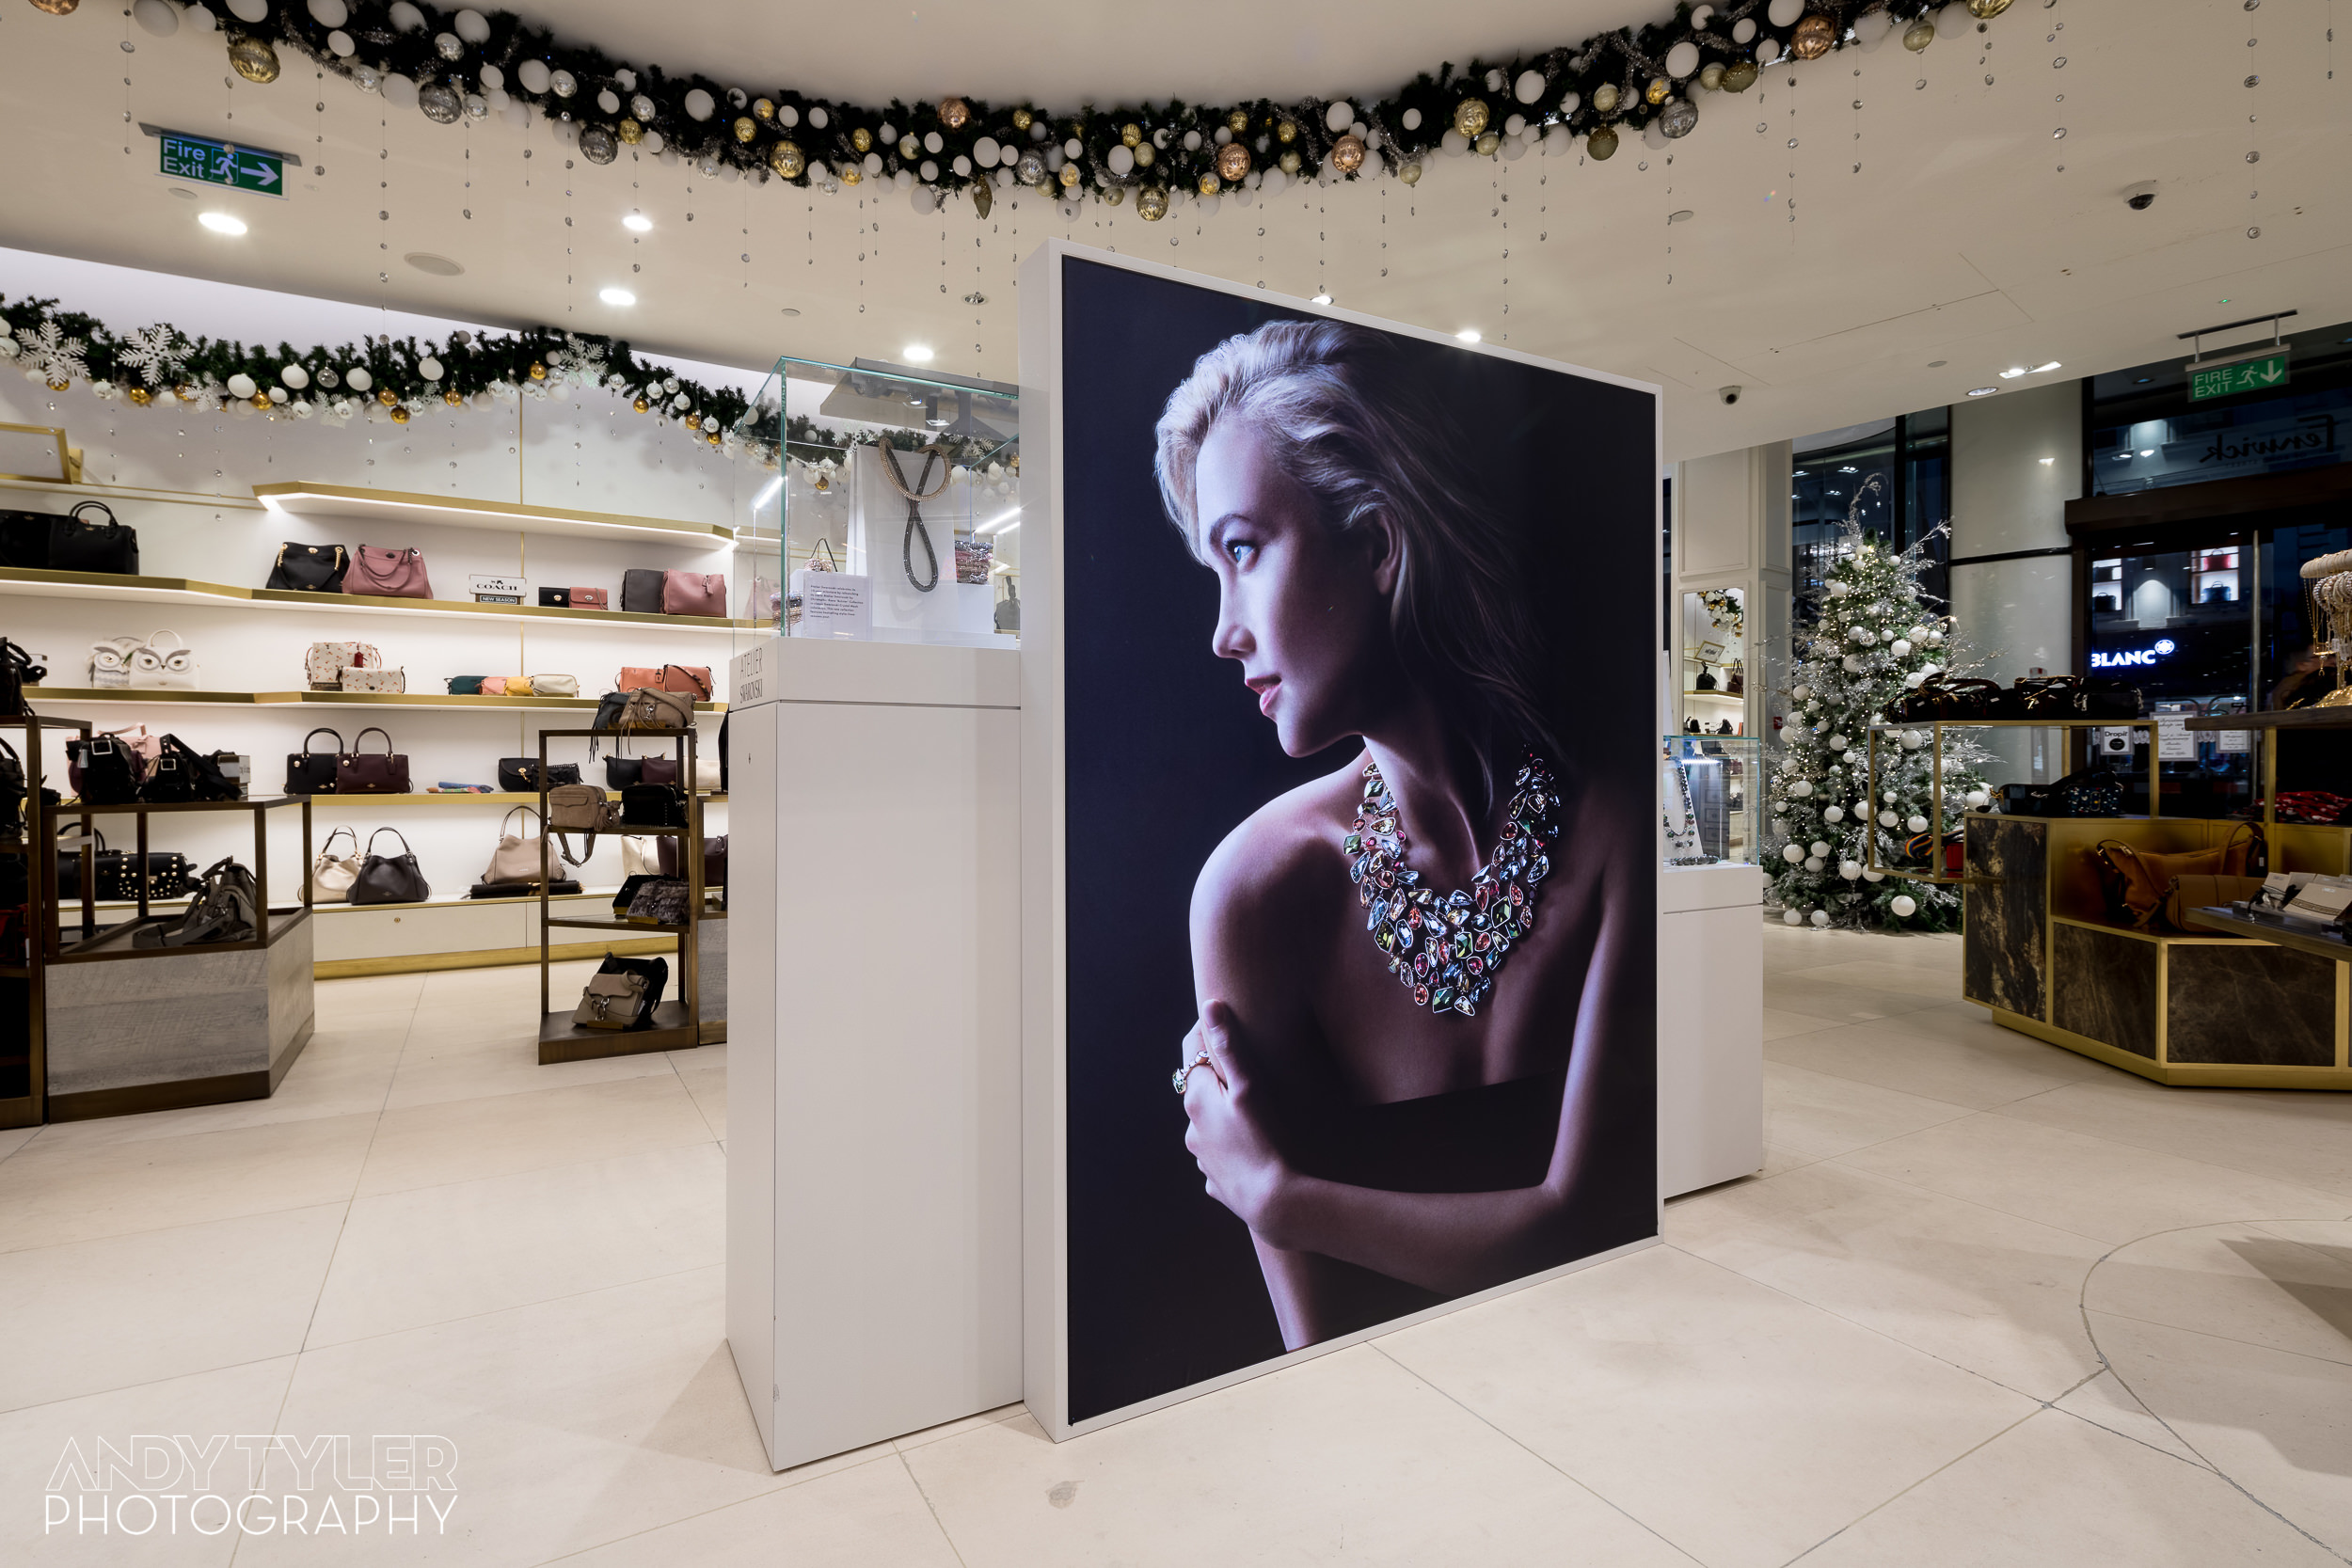 Andy_Tyler_Photography_Luxury_Retail_Interior_009_Andy_Tyler_Photography_089-5DB_7863.jpg